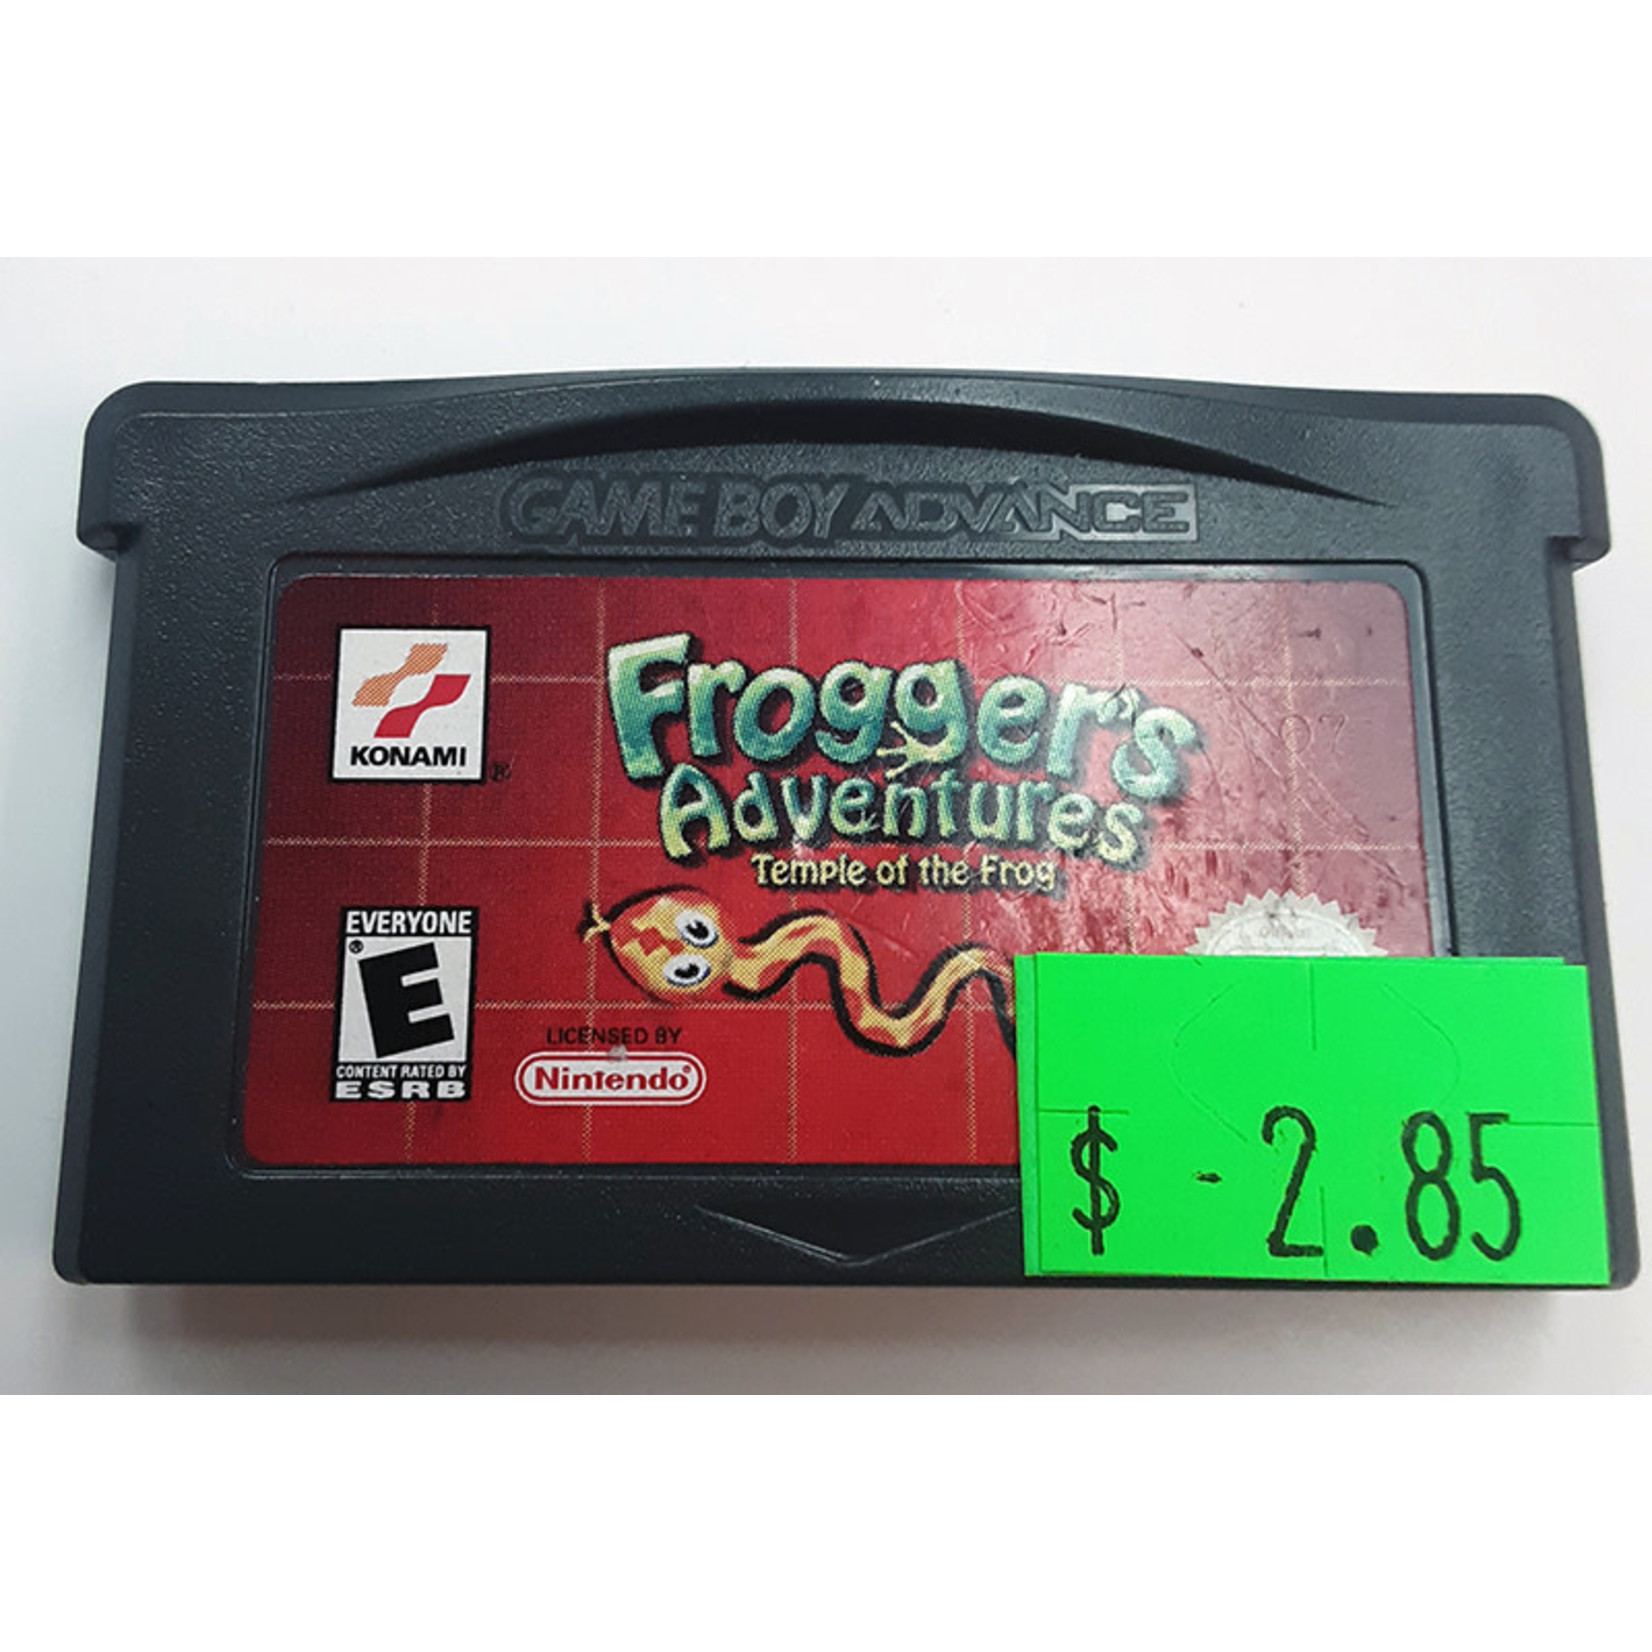 GBAu-Frogger's Adventures Temple of the Frog (cartridge)